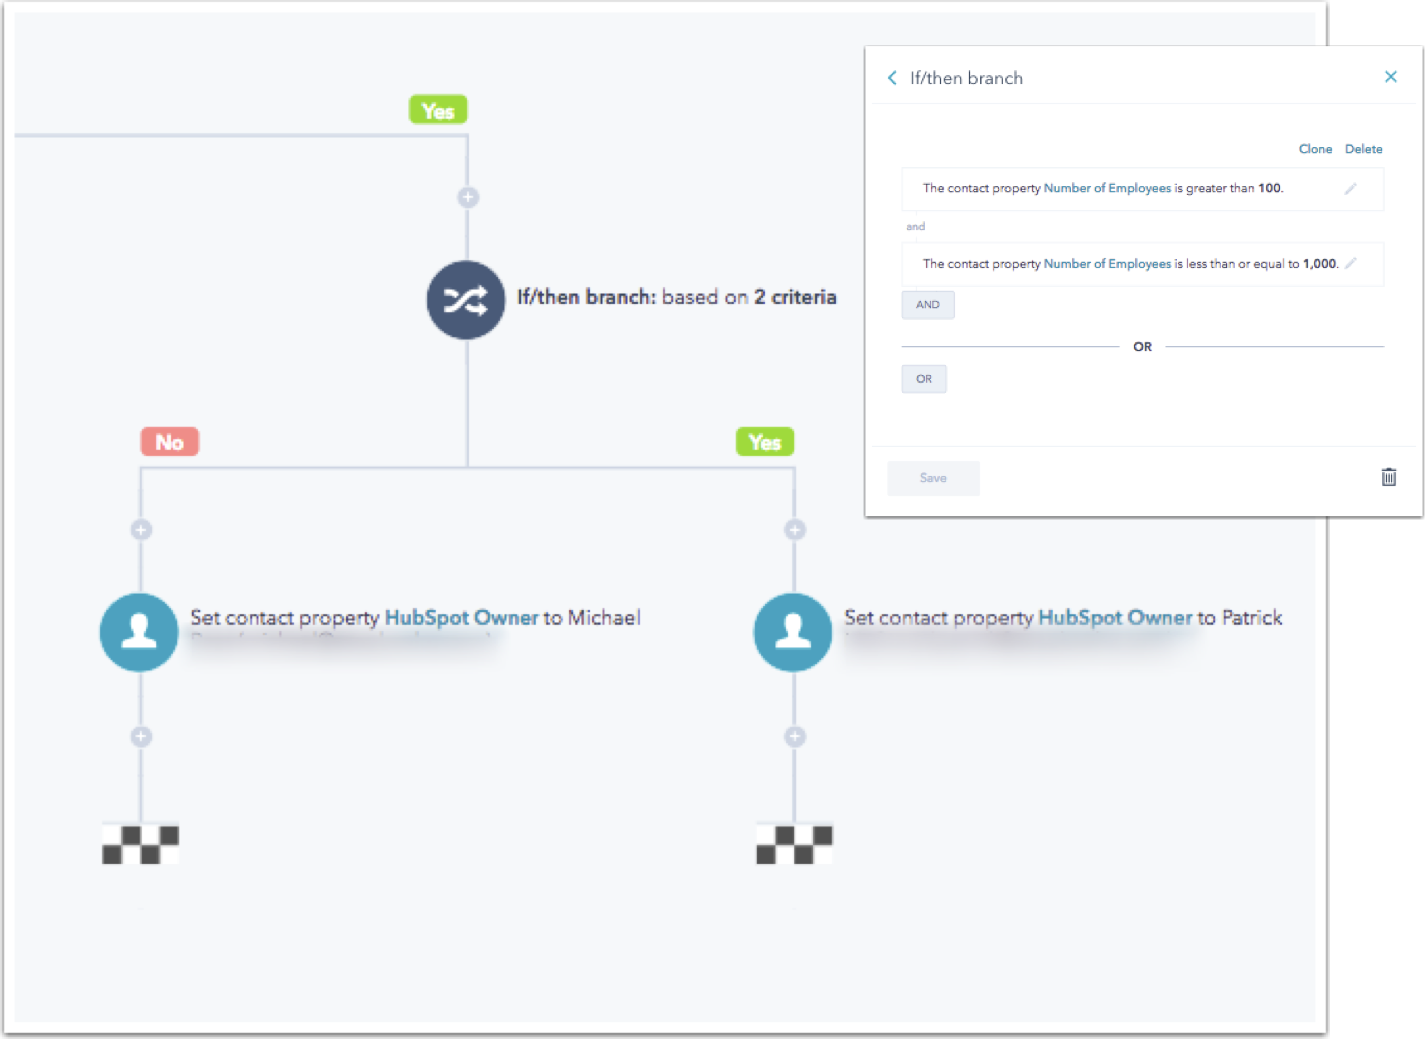 How Branching Logic in Workflows Creates More Efficiency for Our Team [Customer Story]